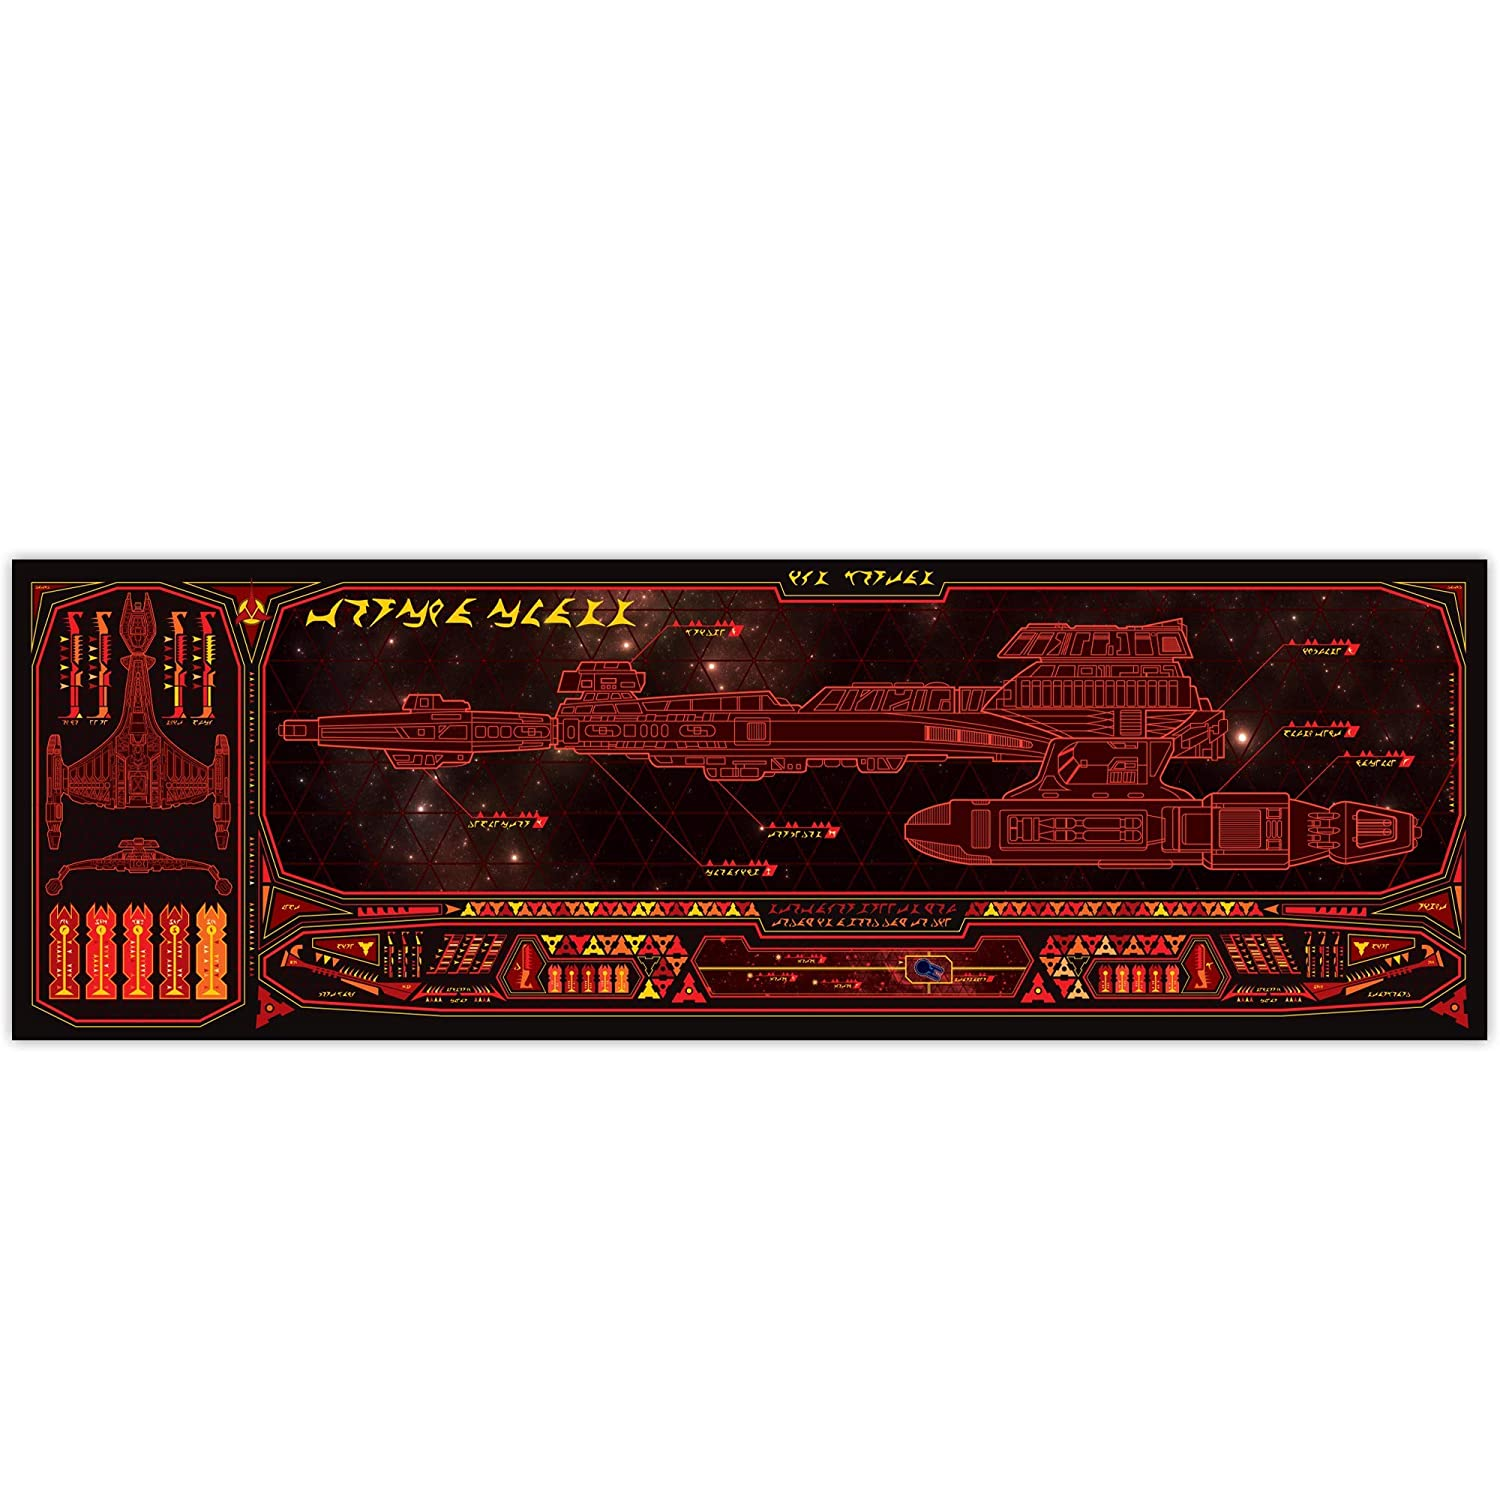 Klingon Outstanding Vorcha Class - Poster LCARS Panoramic 36x11.75 Ranking TOP5